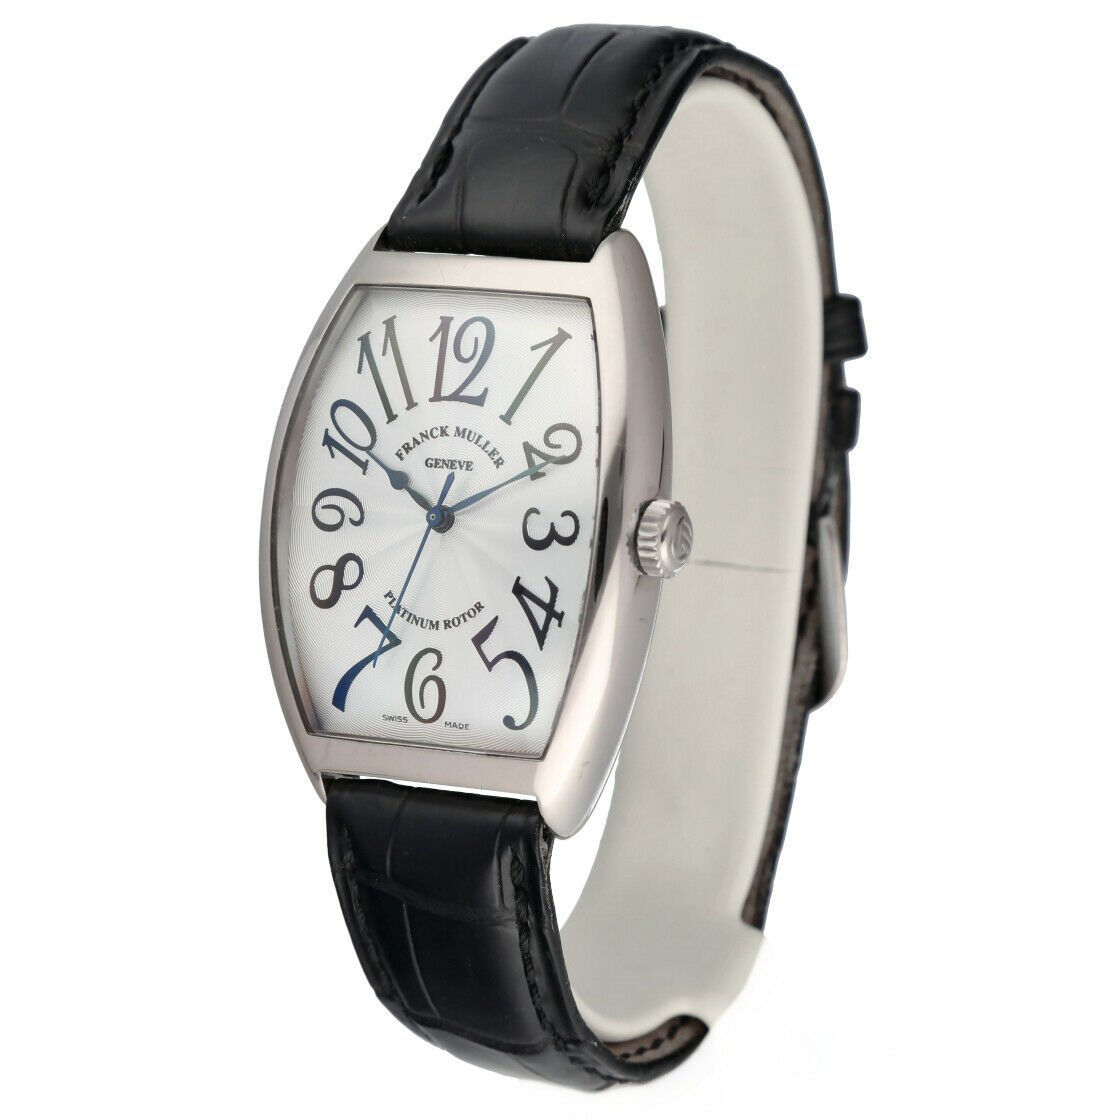 Franck Muller 6850 SC Cintree Curvex 18k White Gold Leather Automatic Mens Watch 124317748372 2